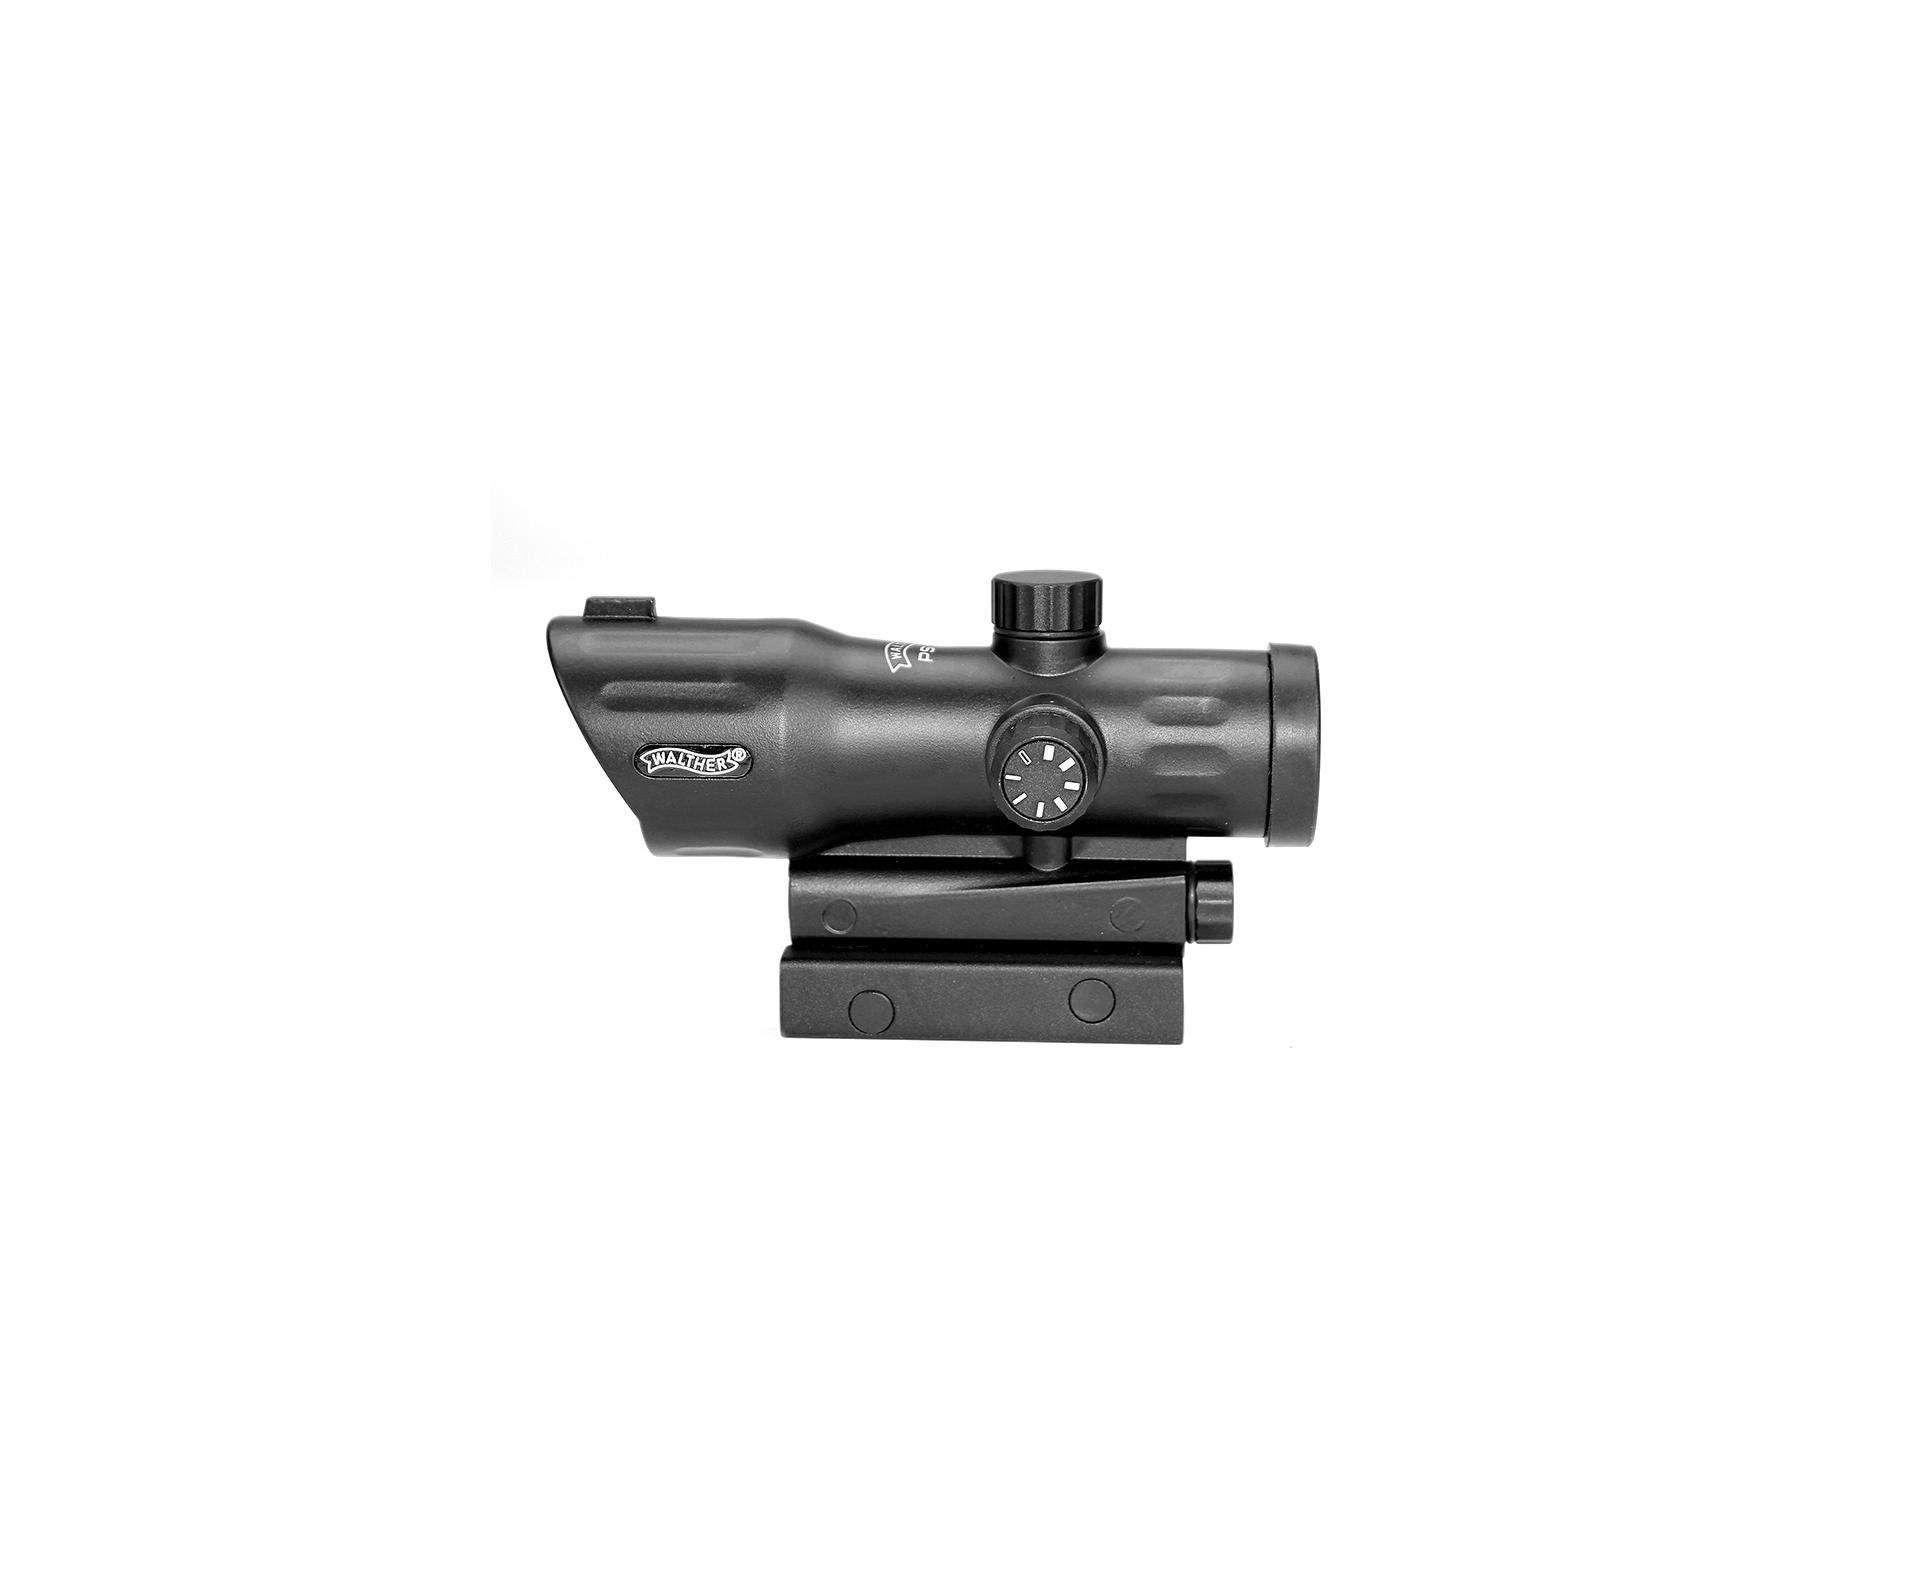 Mira Holografica Walther Ps55 (red Dot)